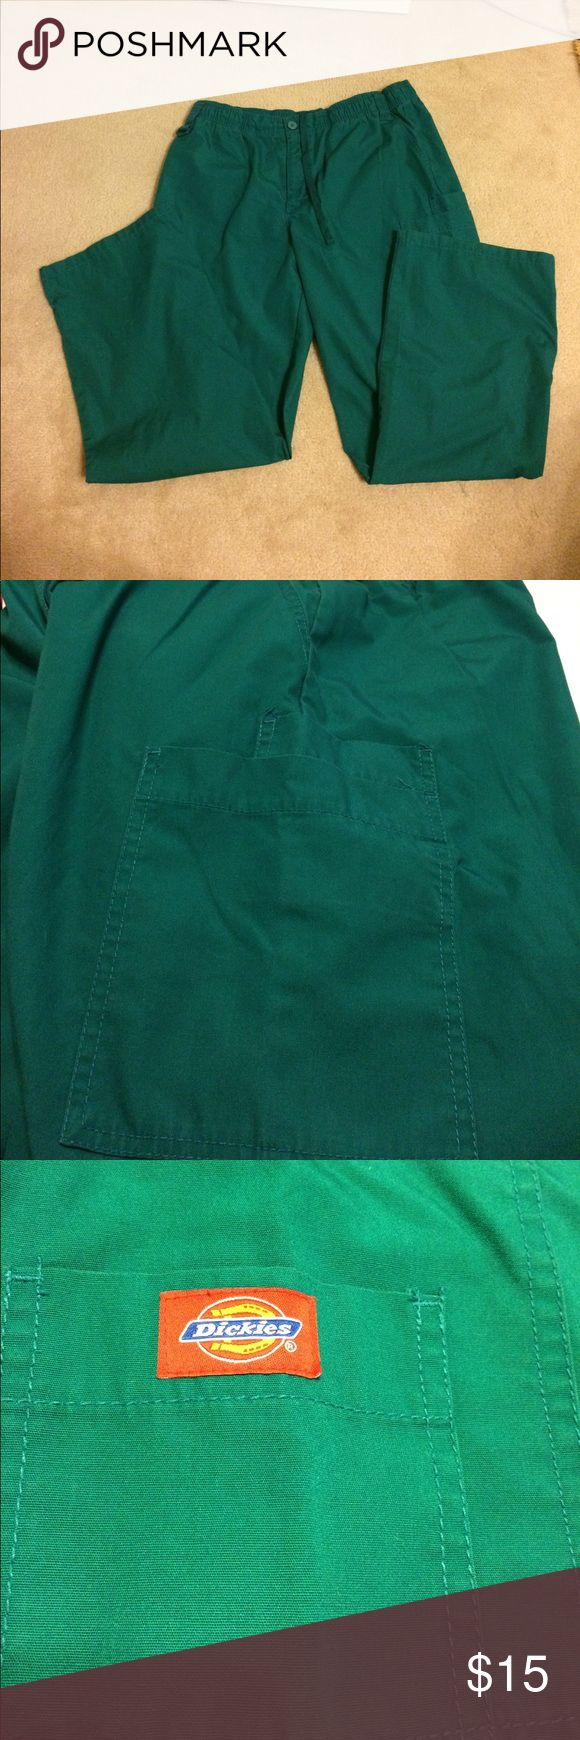 Dickies Pants Green dickeys pants with one pocket in the back one pocket on top in the front and each side has two additional pockets further down on the leg. Waistband is elastic and inseam is 30 1/2 inches. Have been worn but still in really good condition Dickies Pants